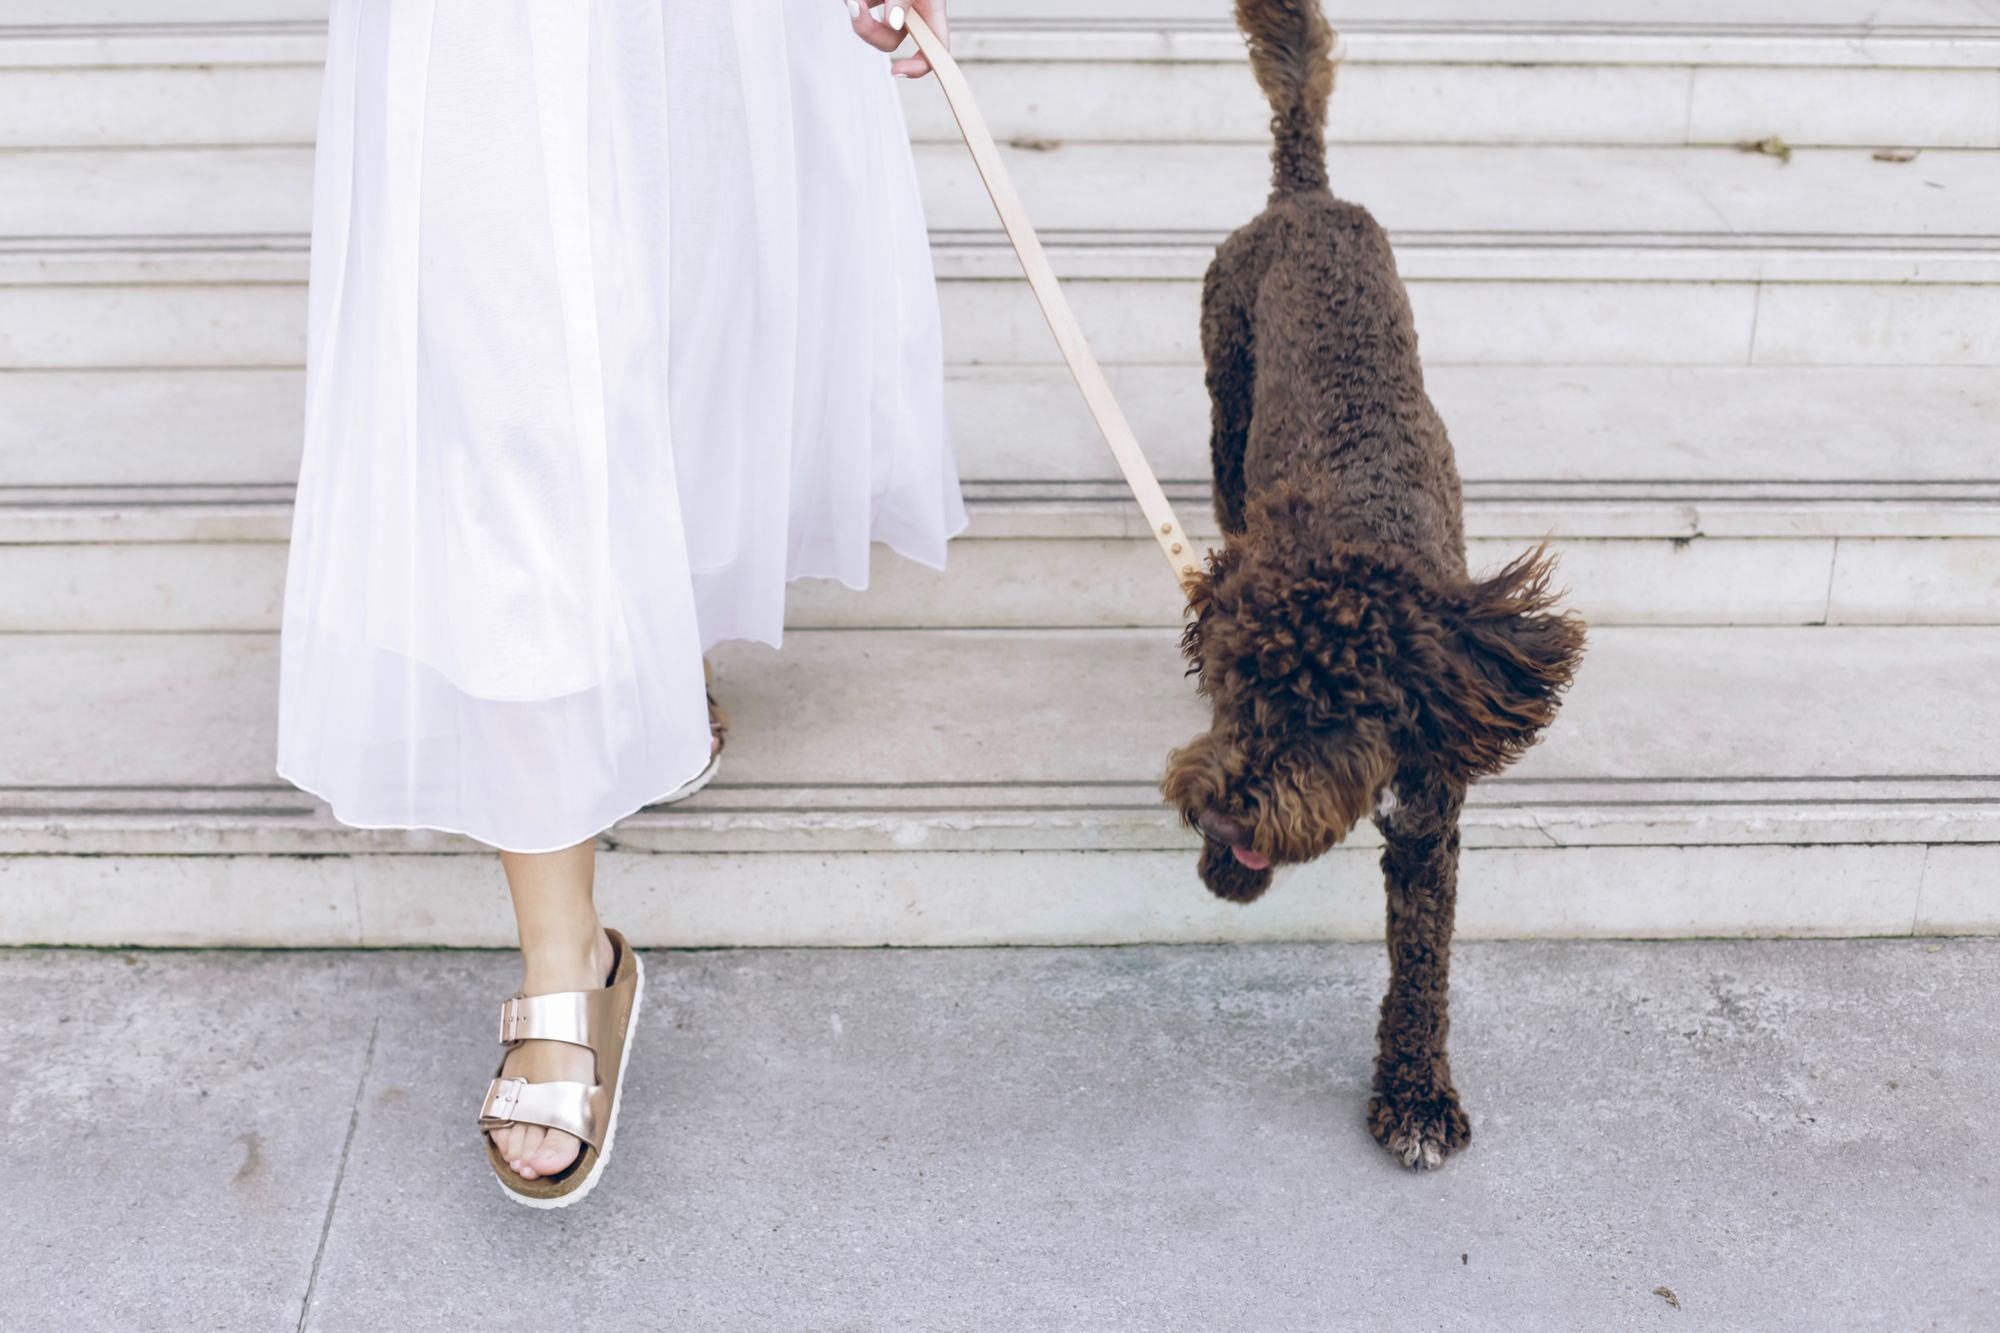 stylish-dog-parent-takes-pup-on-a-walk-down-steps